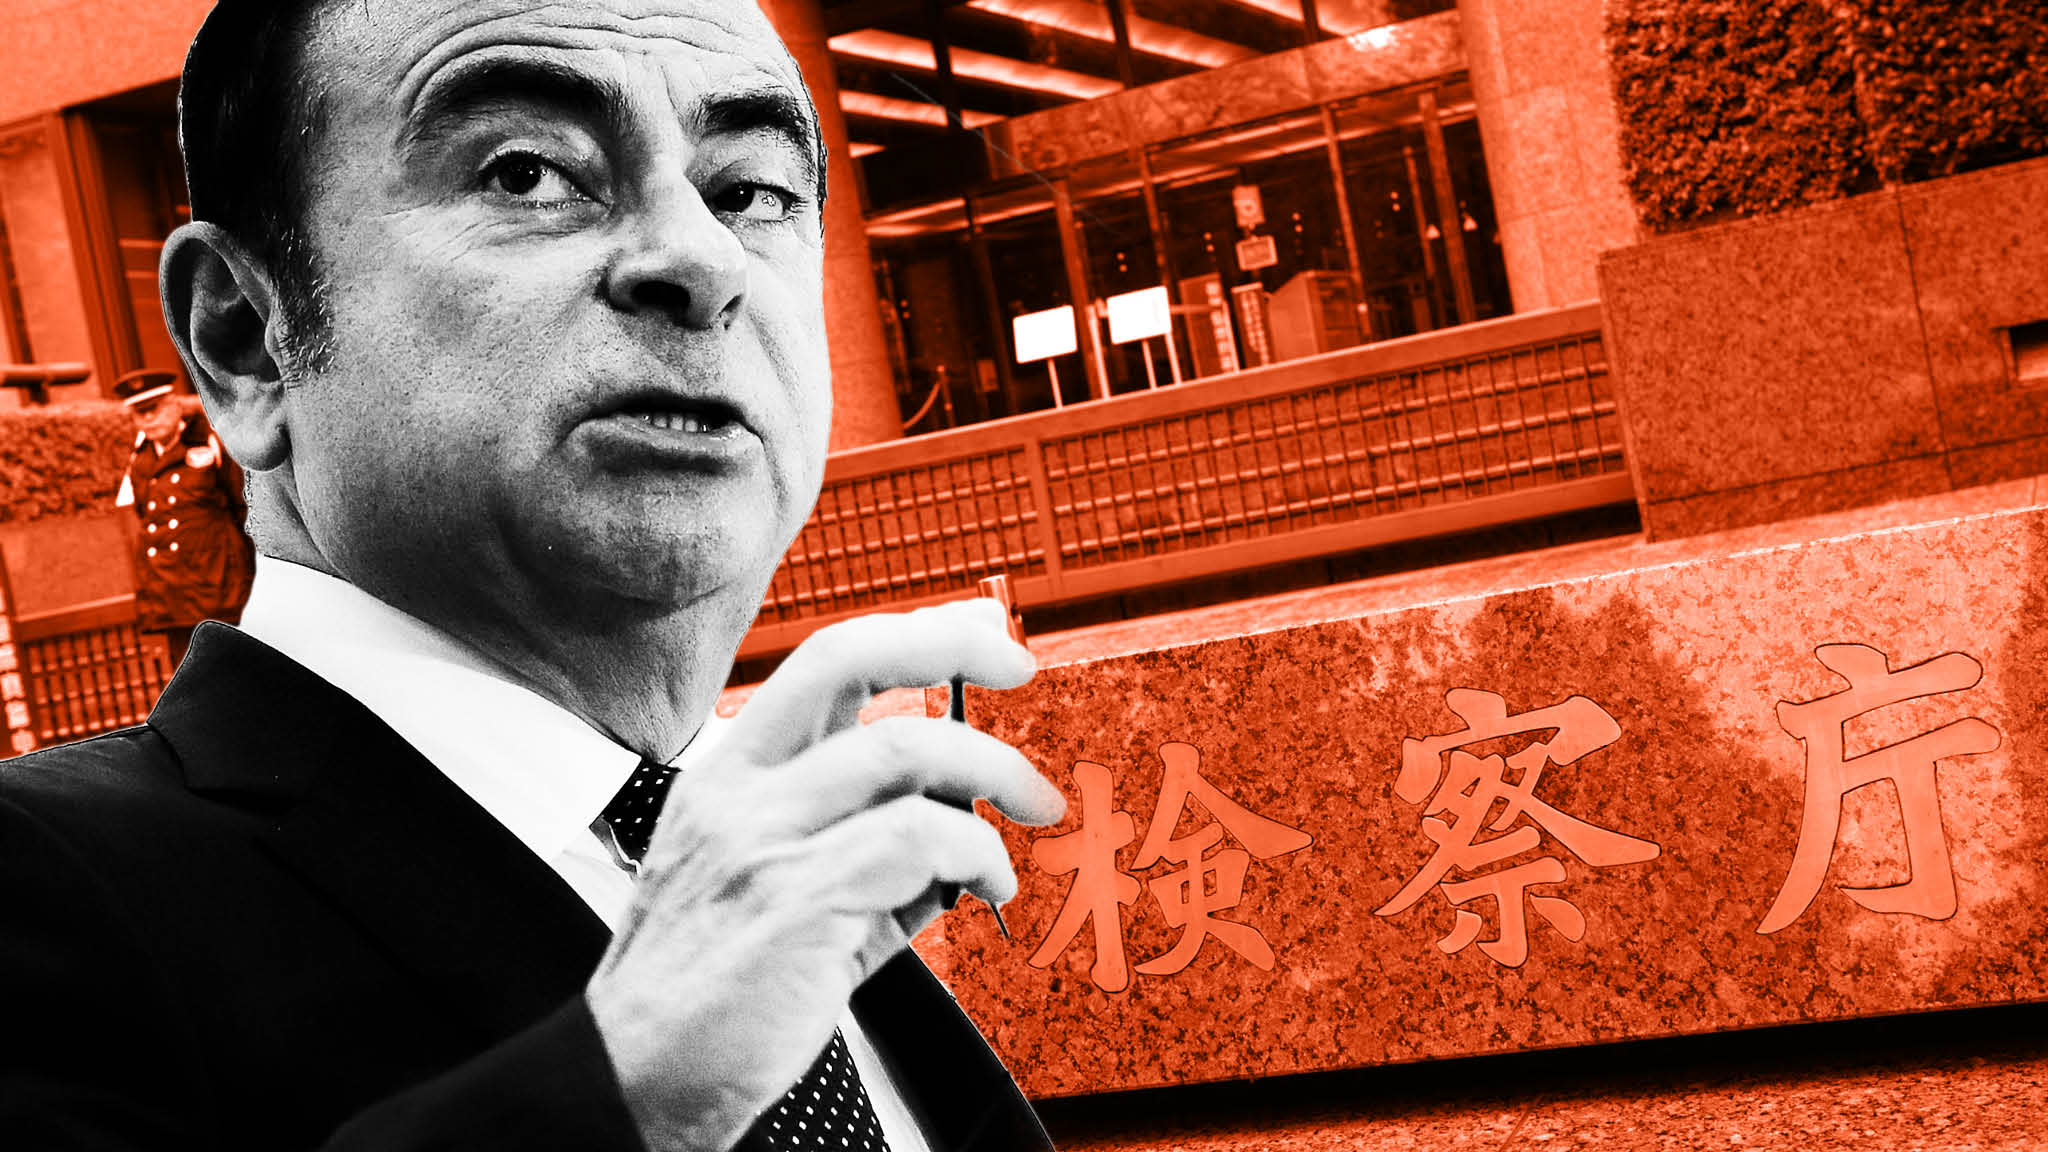 Carlos Ghosn pins hopes on ex-prosecutor who once pursued wealthy